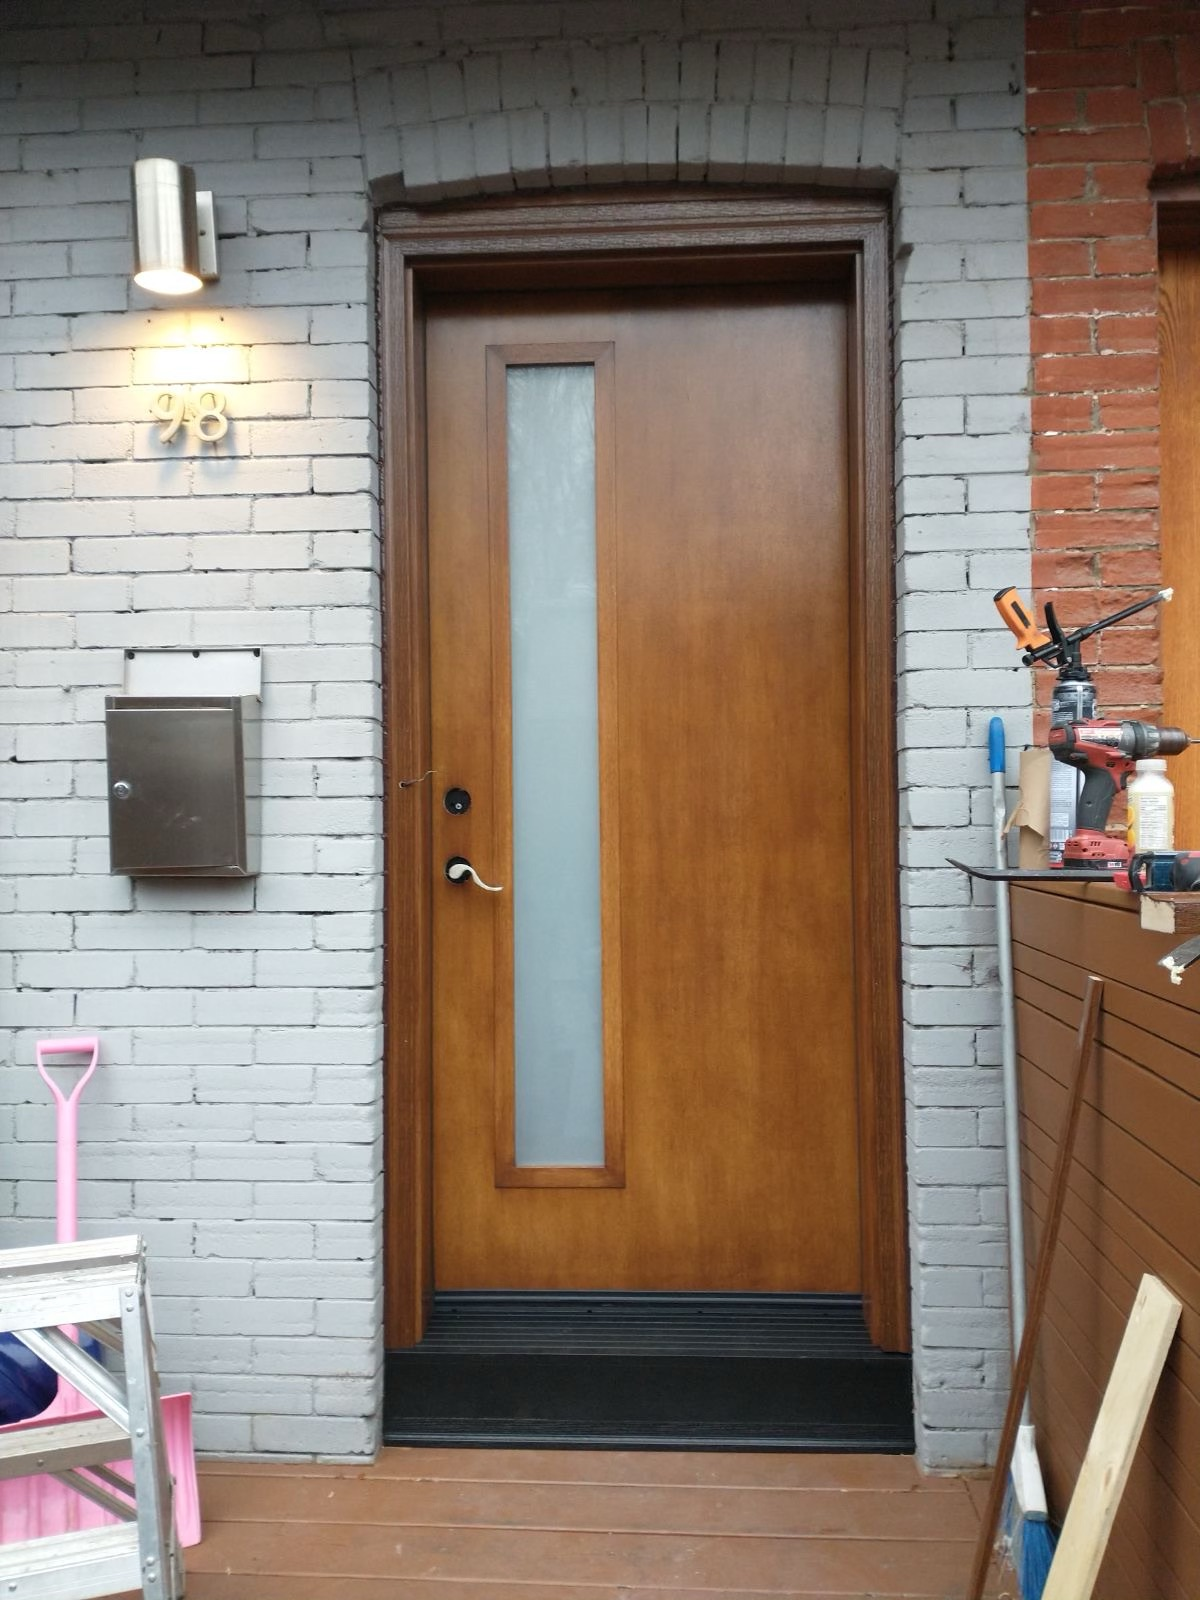 Smooth Finish Single Entry Door With Traditional Hardware